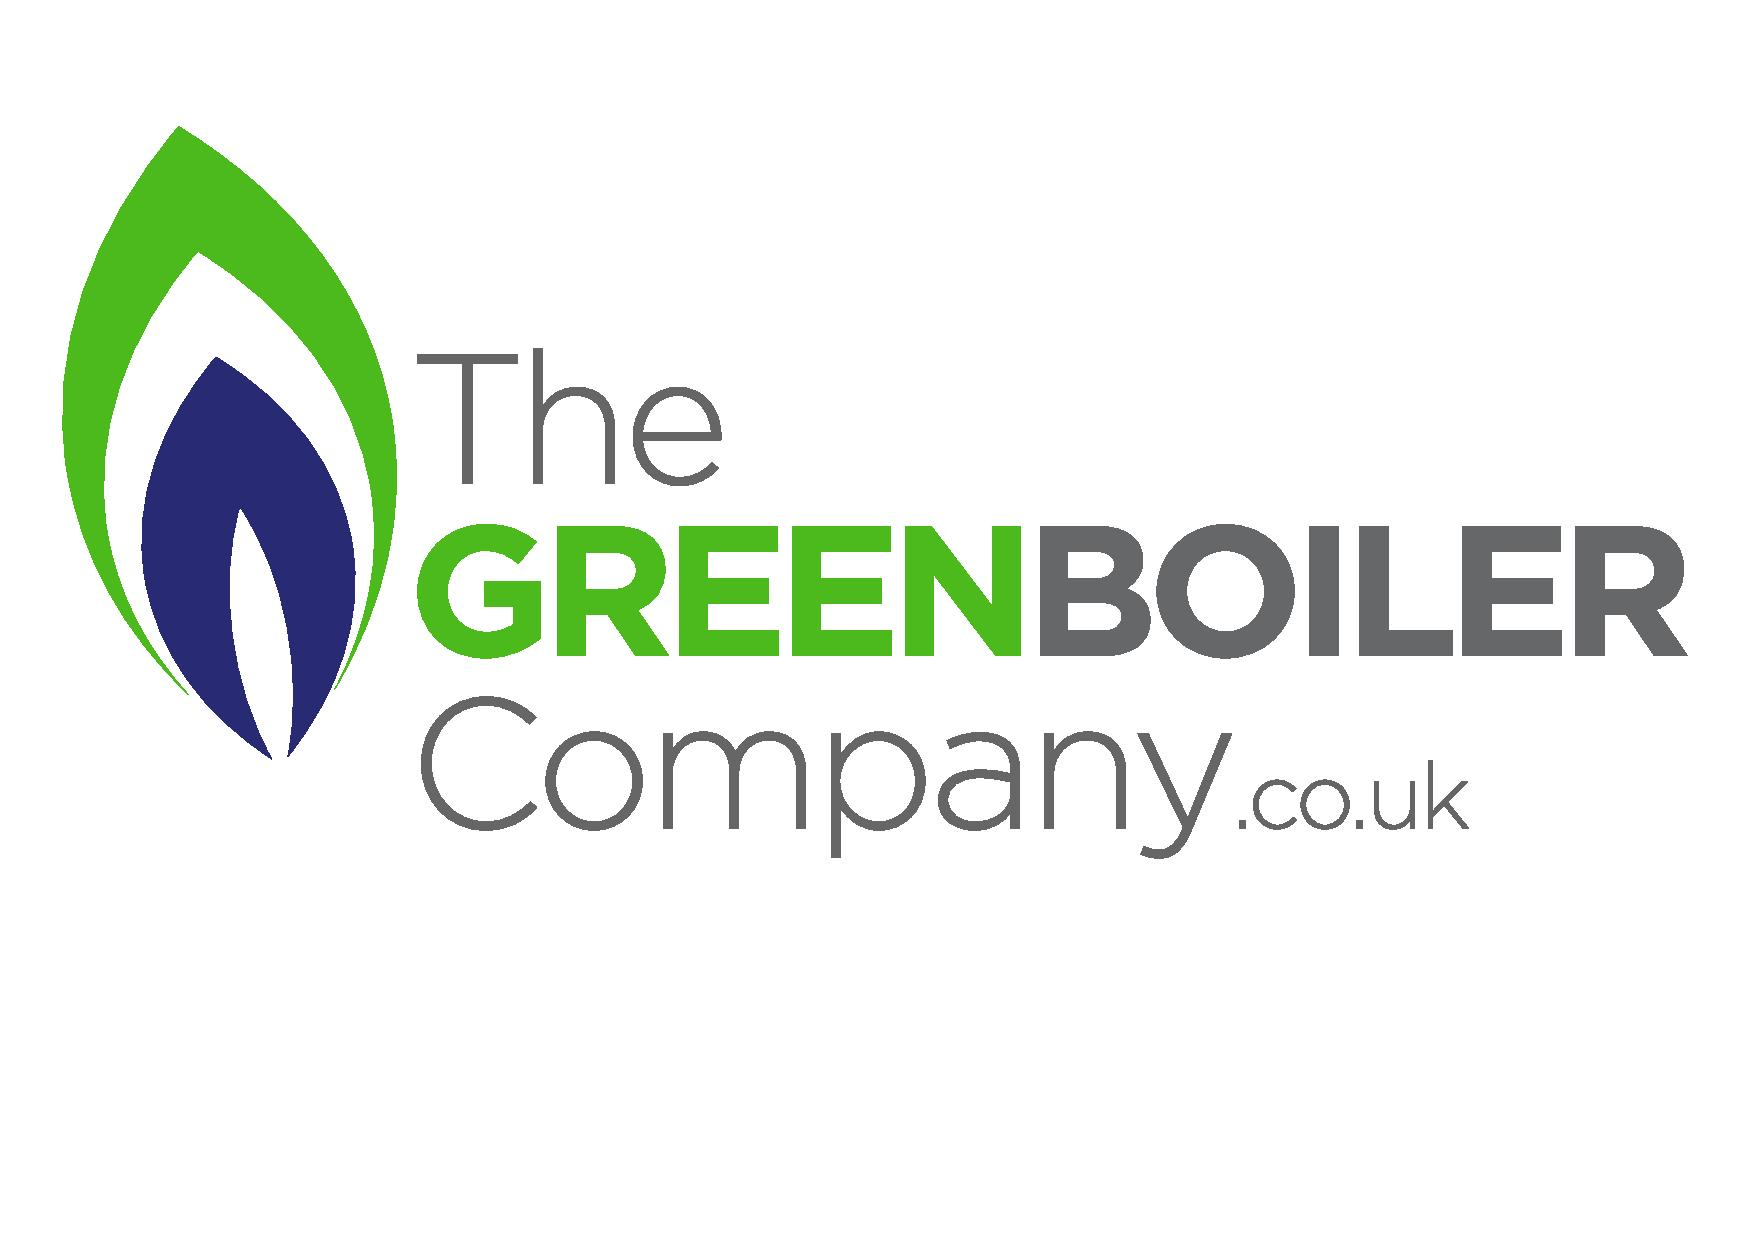 The Green Boiler Company